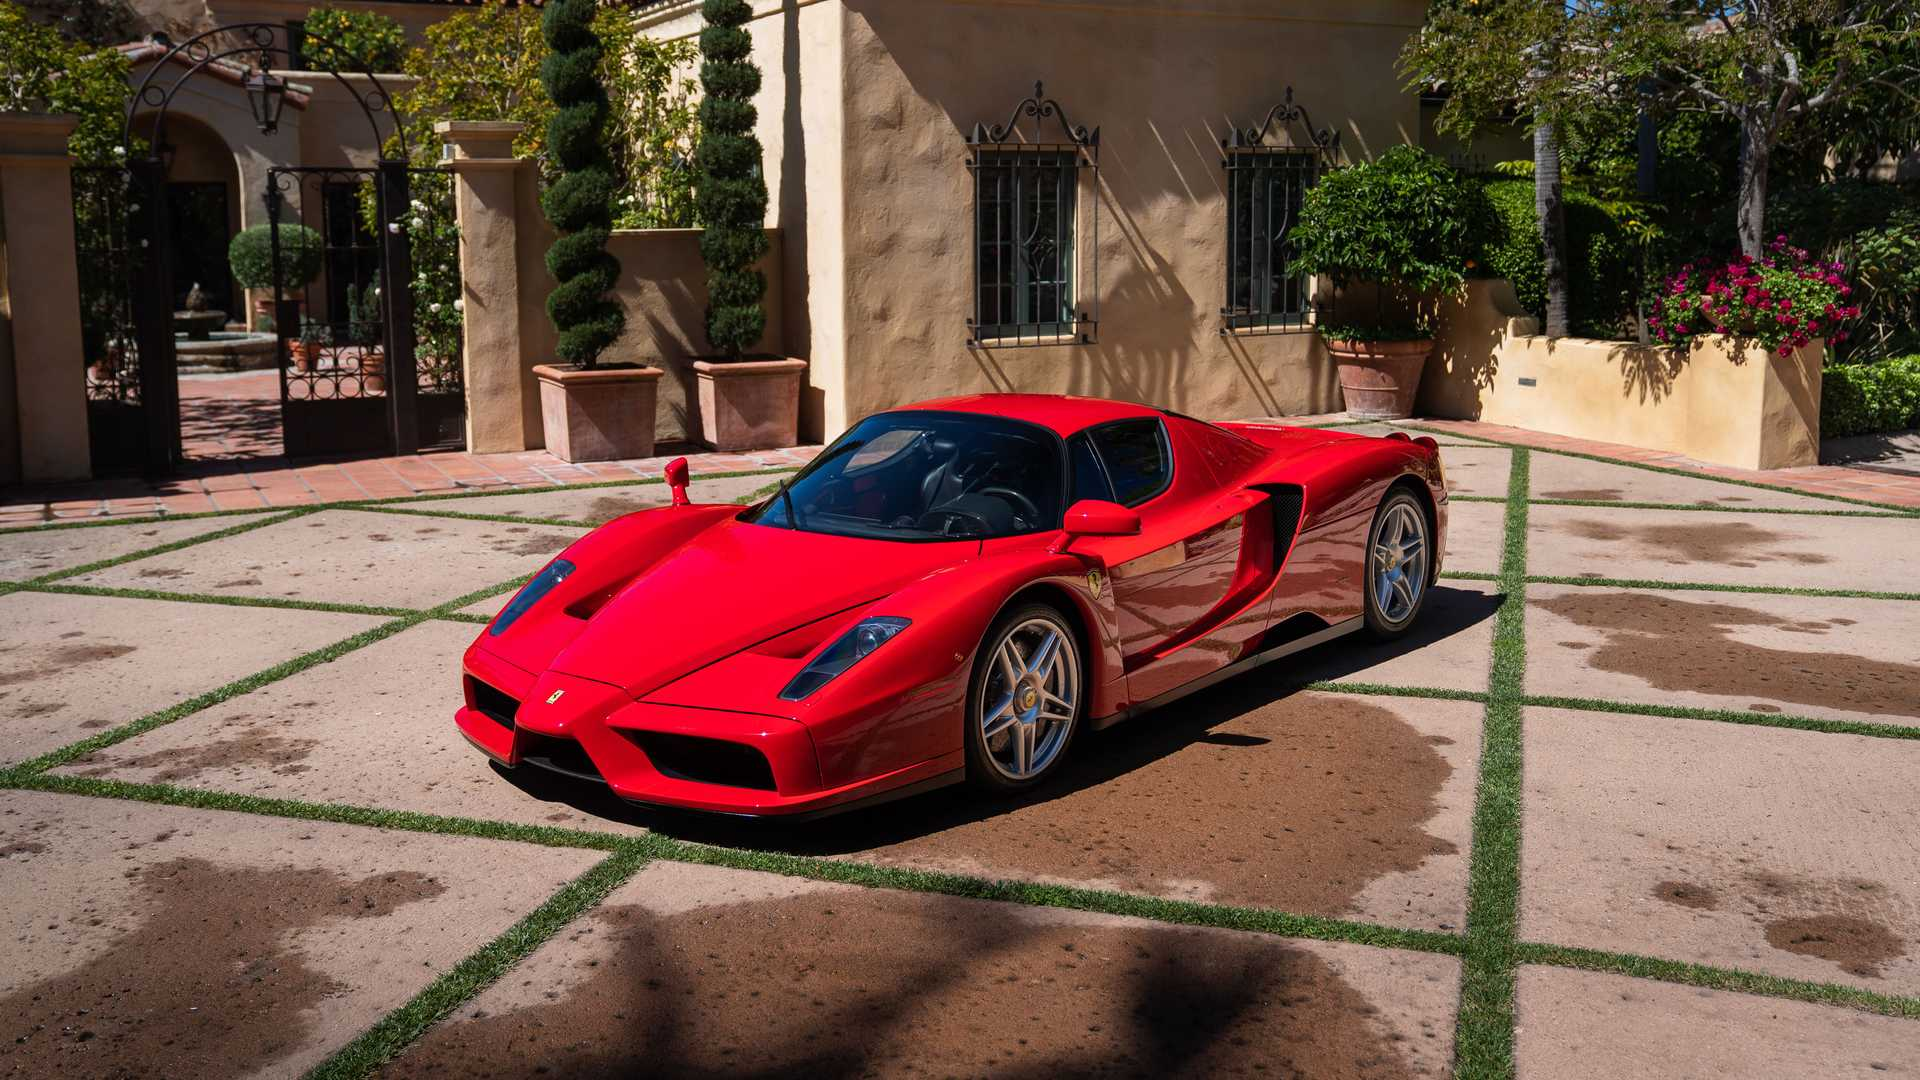 2003 Ferrari Enzo sold at auction for $2,640,000